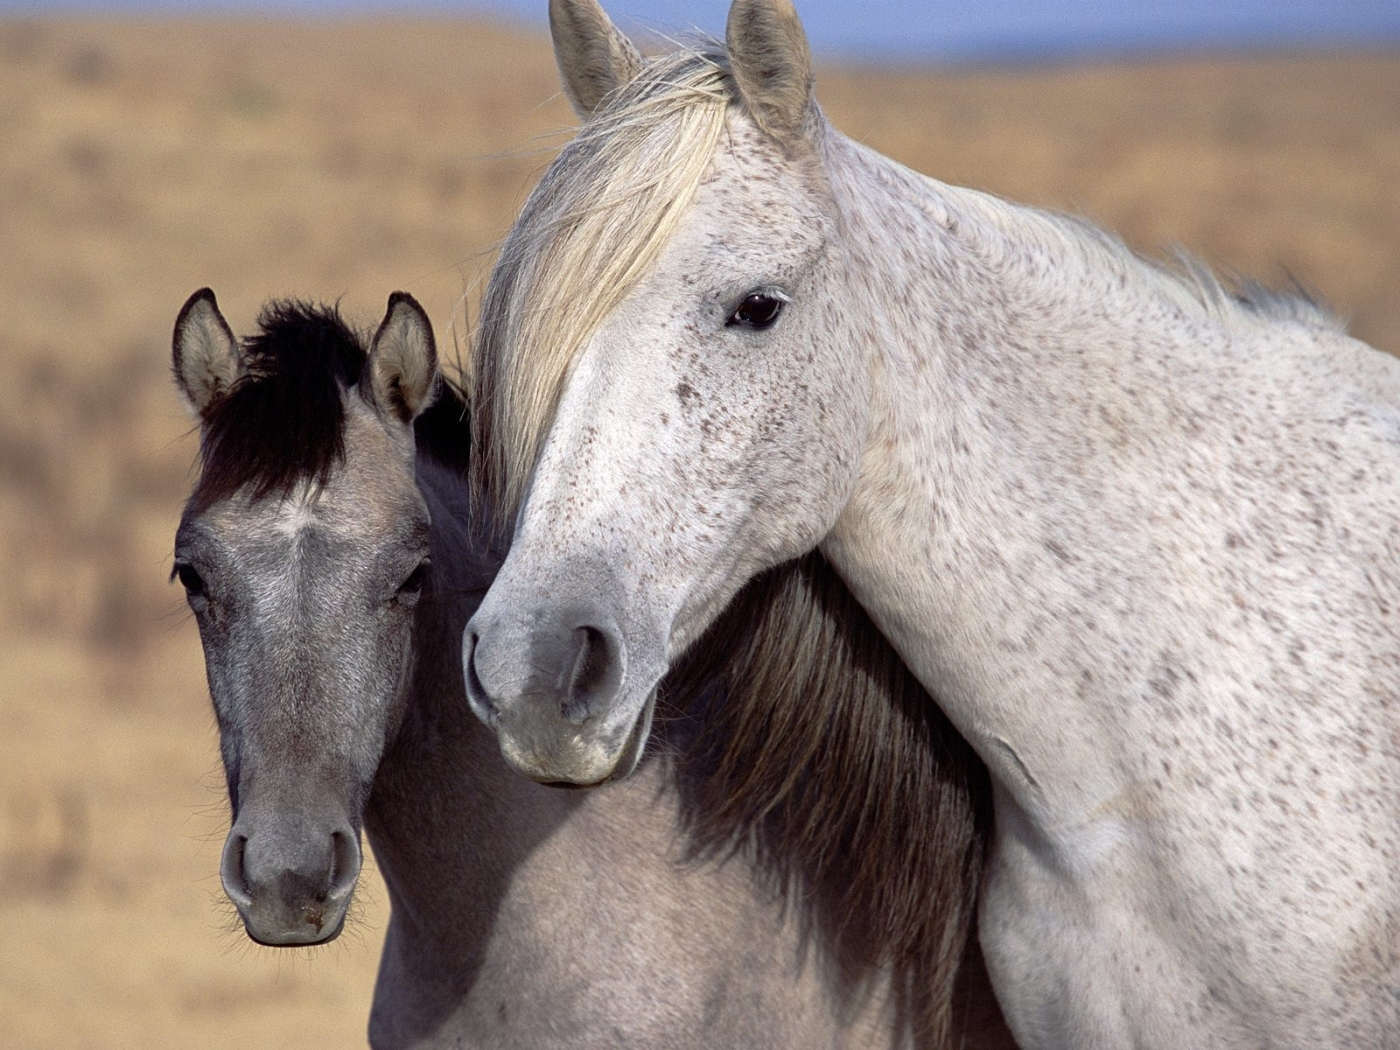 44801 download wallpaper Animals, Horses screensavers and pictures for free